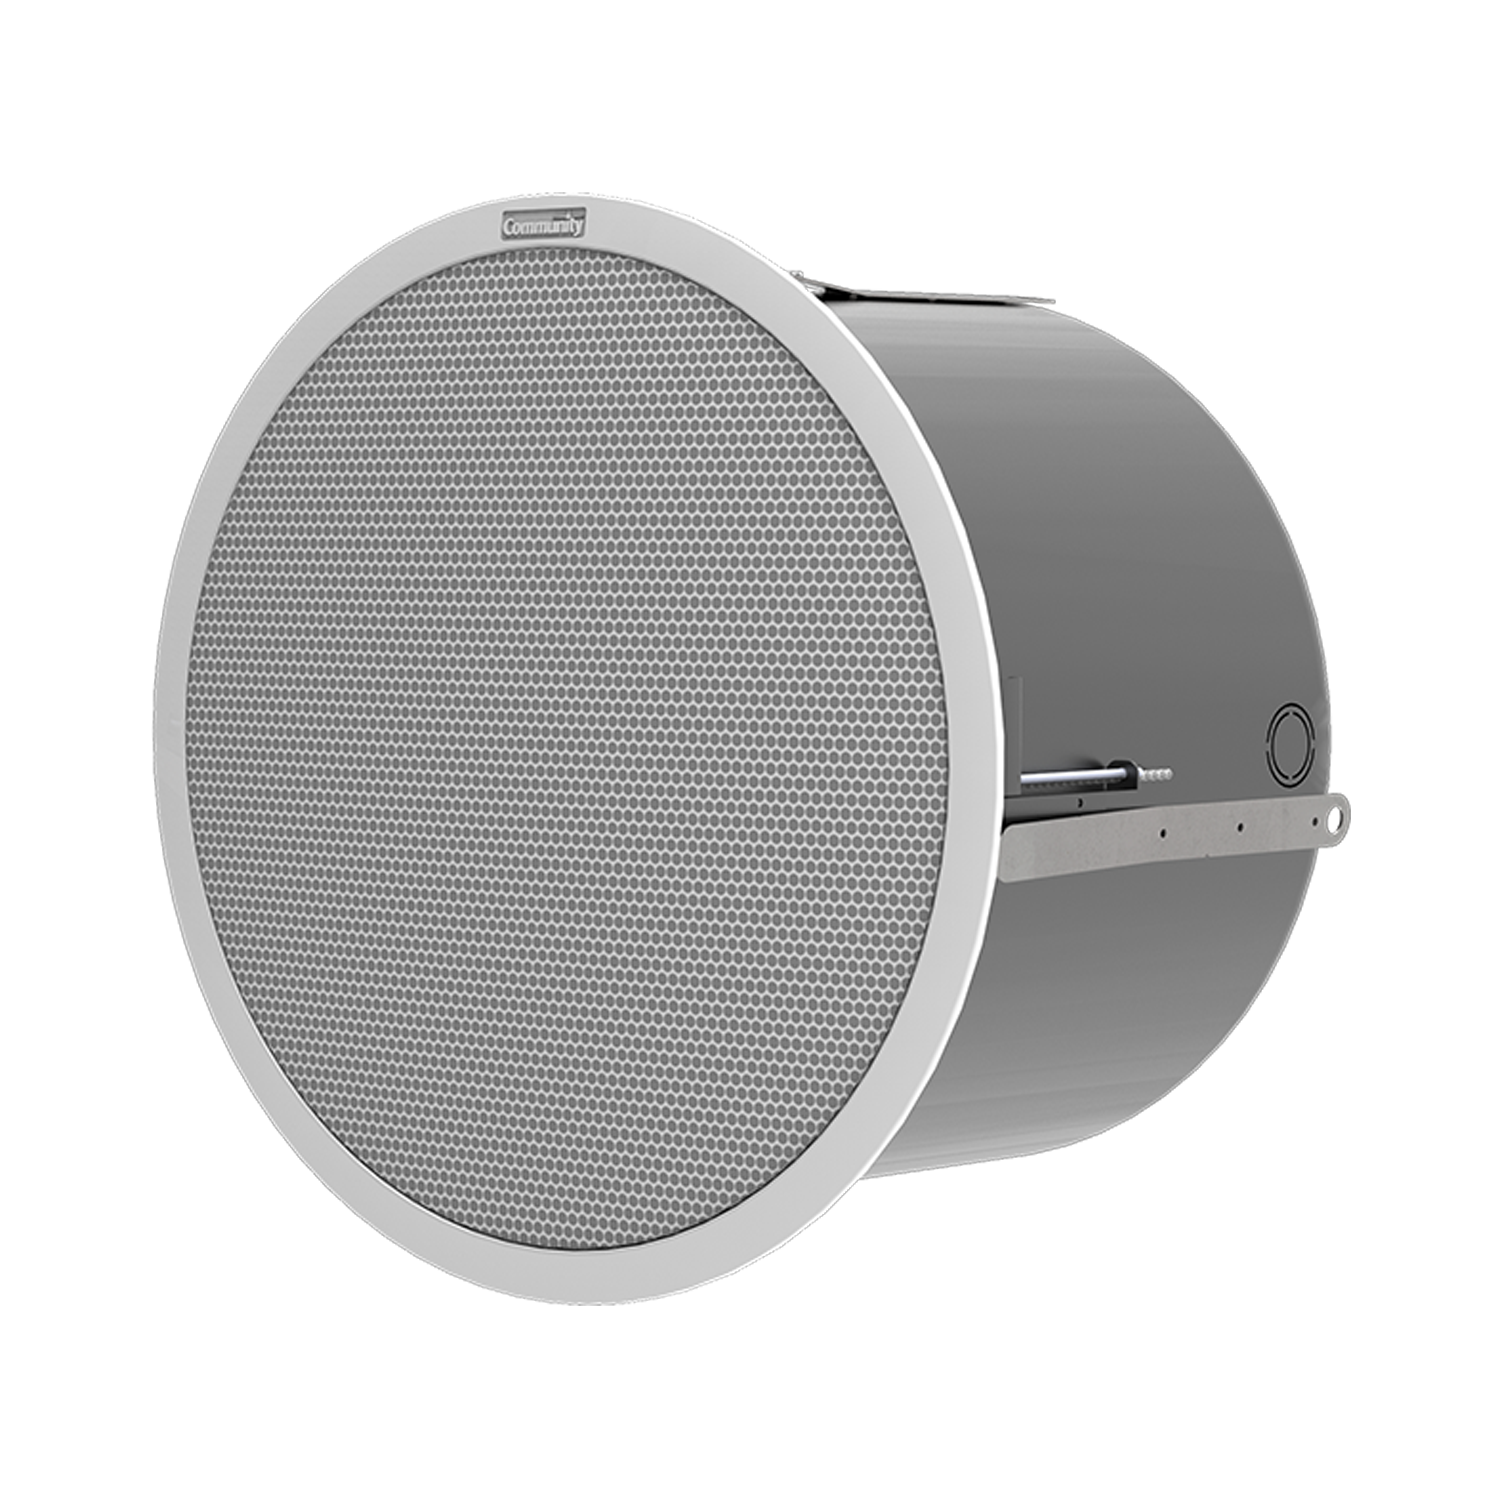 D10SUB Ceiling Loudspeaker 10-inch High Output High Quality Subwoofer